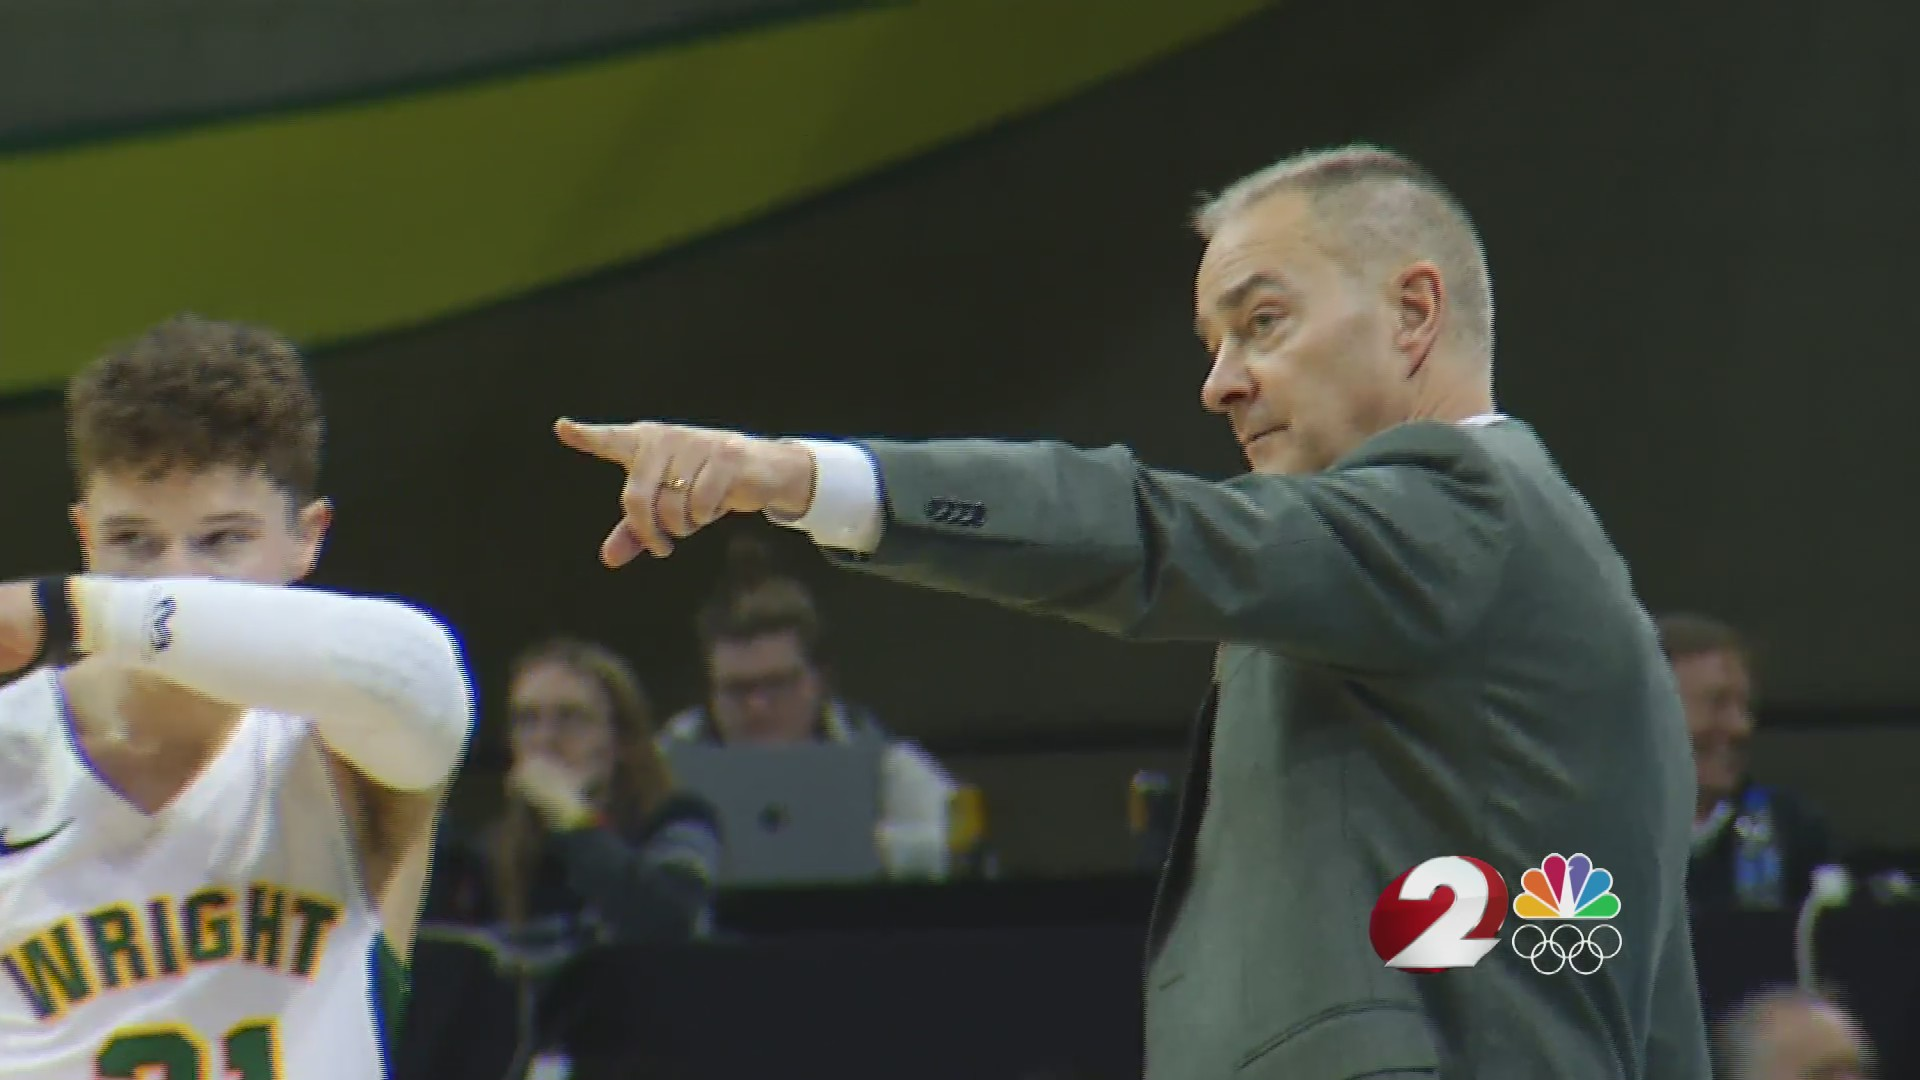 WSU Athletic Director discusses historic season ahead of Horizon League semifinals